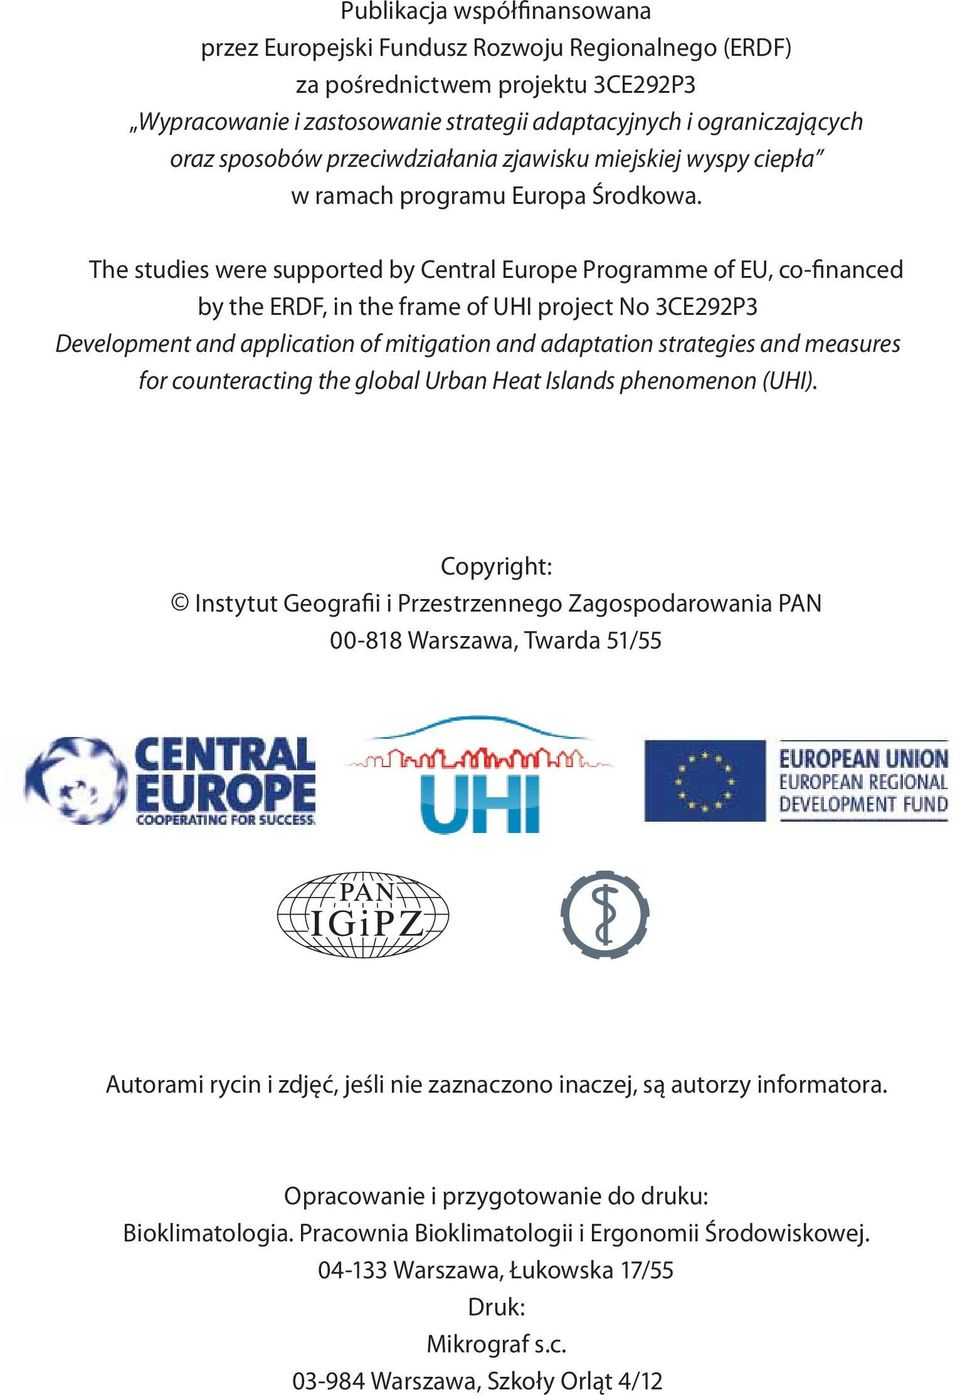 The studies were supported by Central Europe Programme of EU, co-financed by the ERDF, in the frame of UHI project No 3CE292P3 Development and application of mitigation and adaptation strategies and